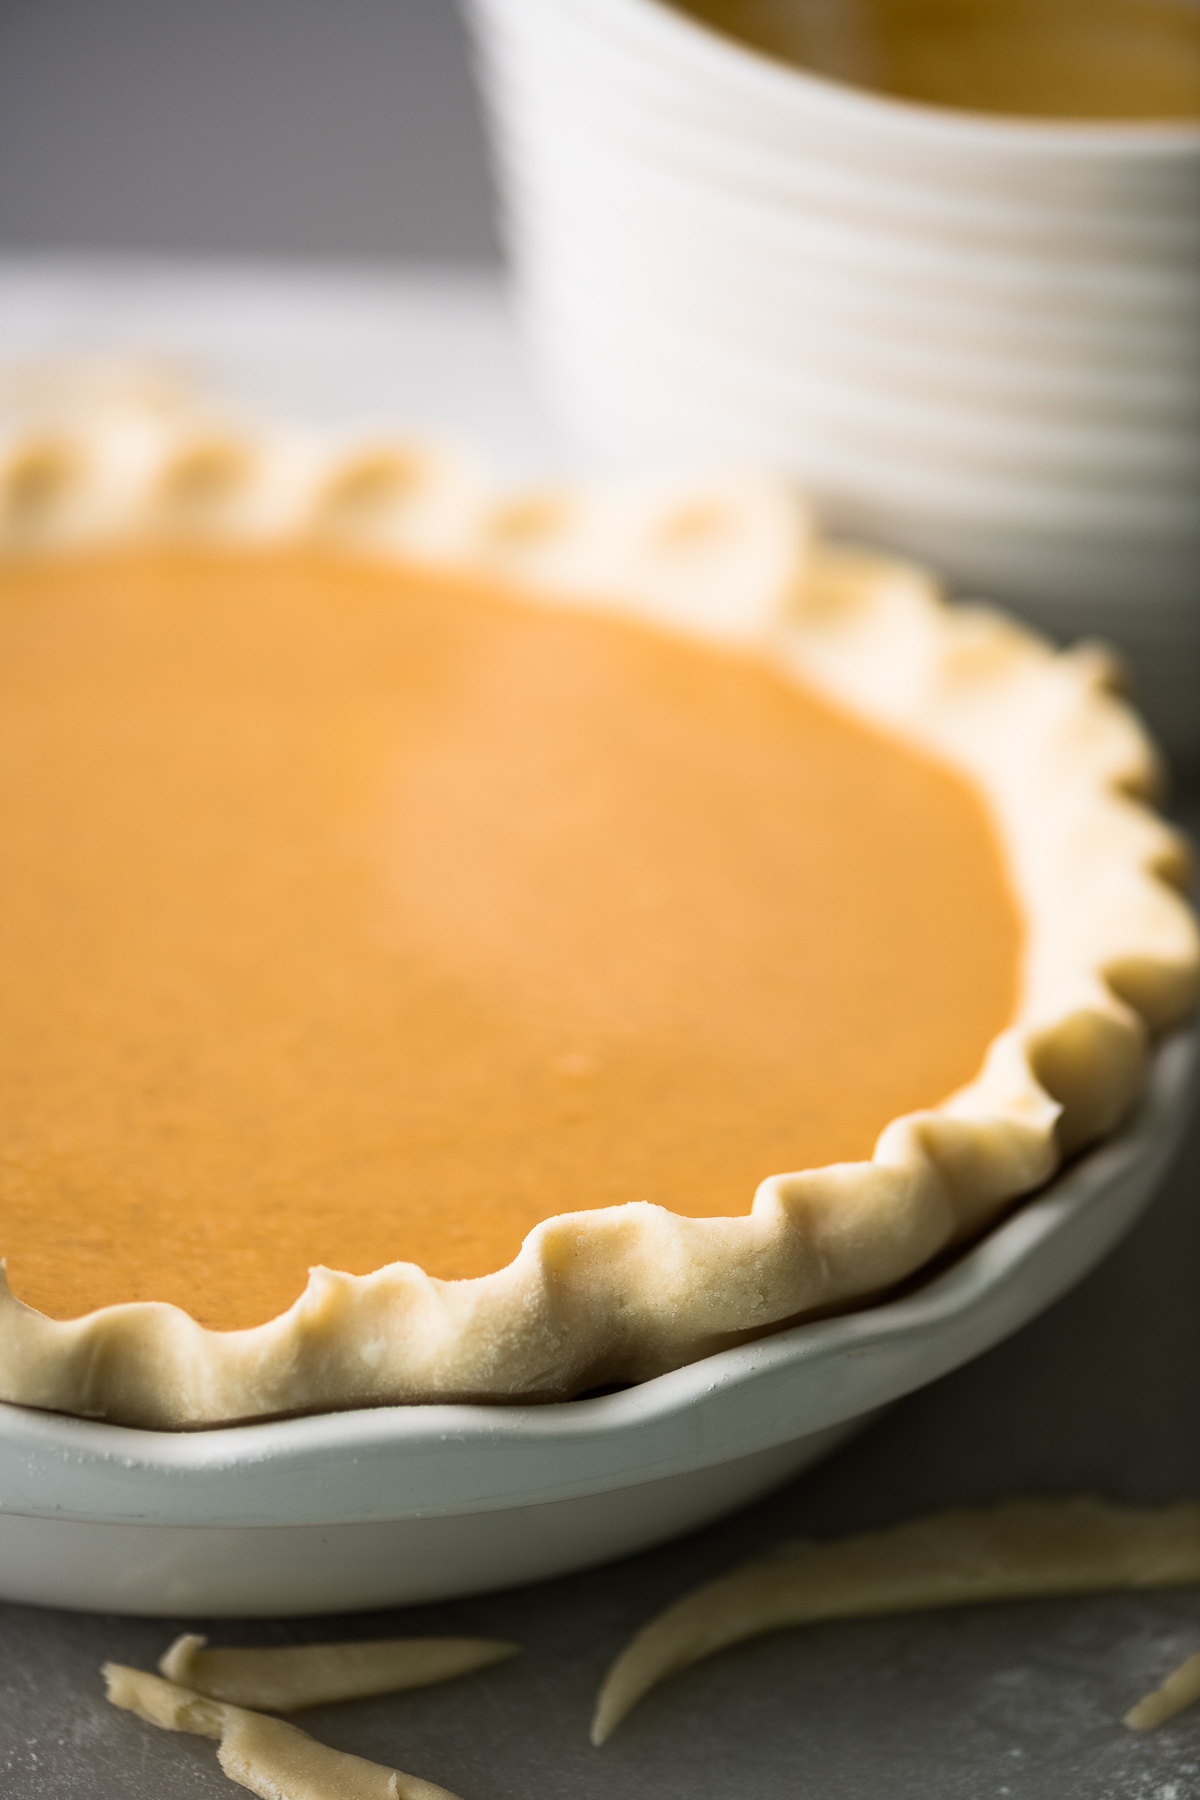 The new updated Libby's famous pumpkin pie recipe, ready to bake